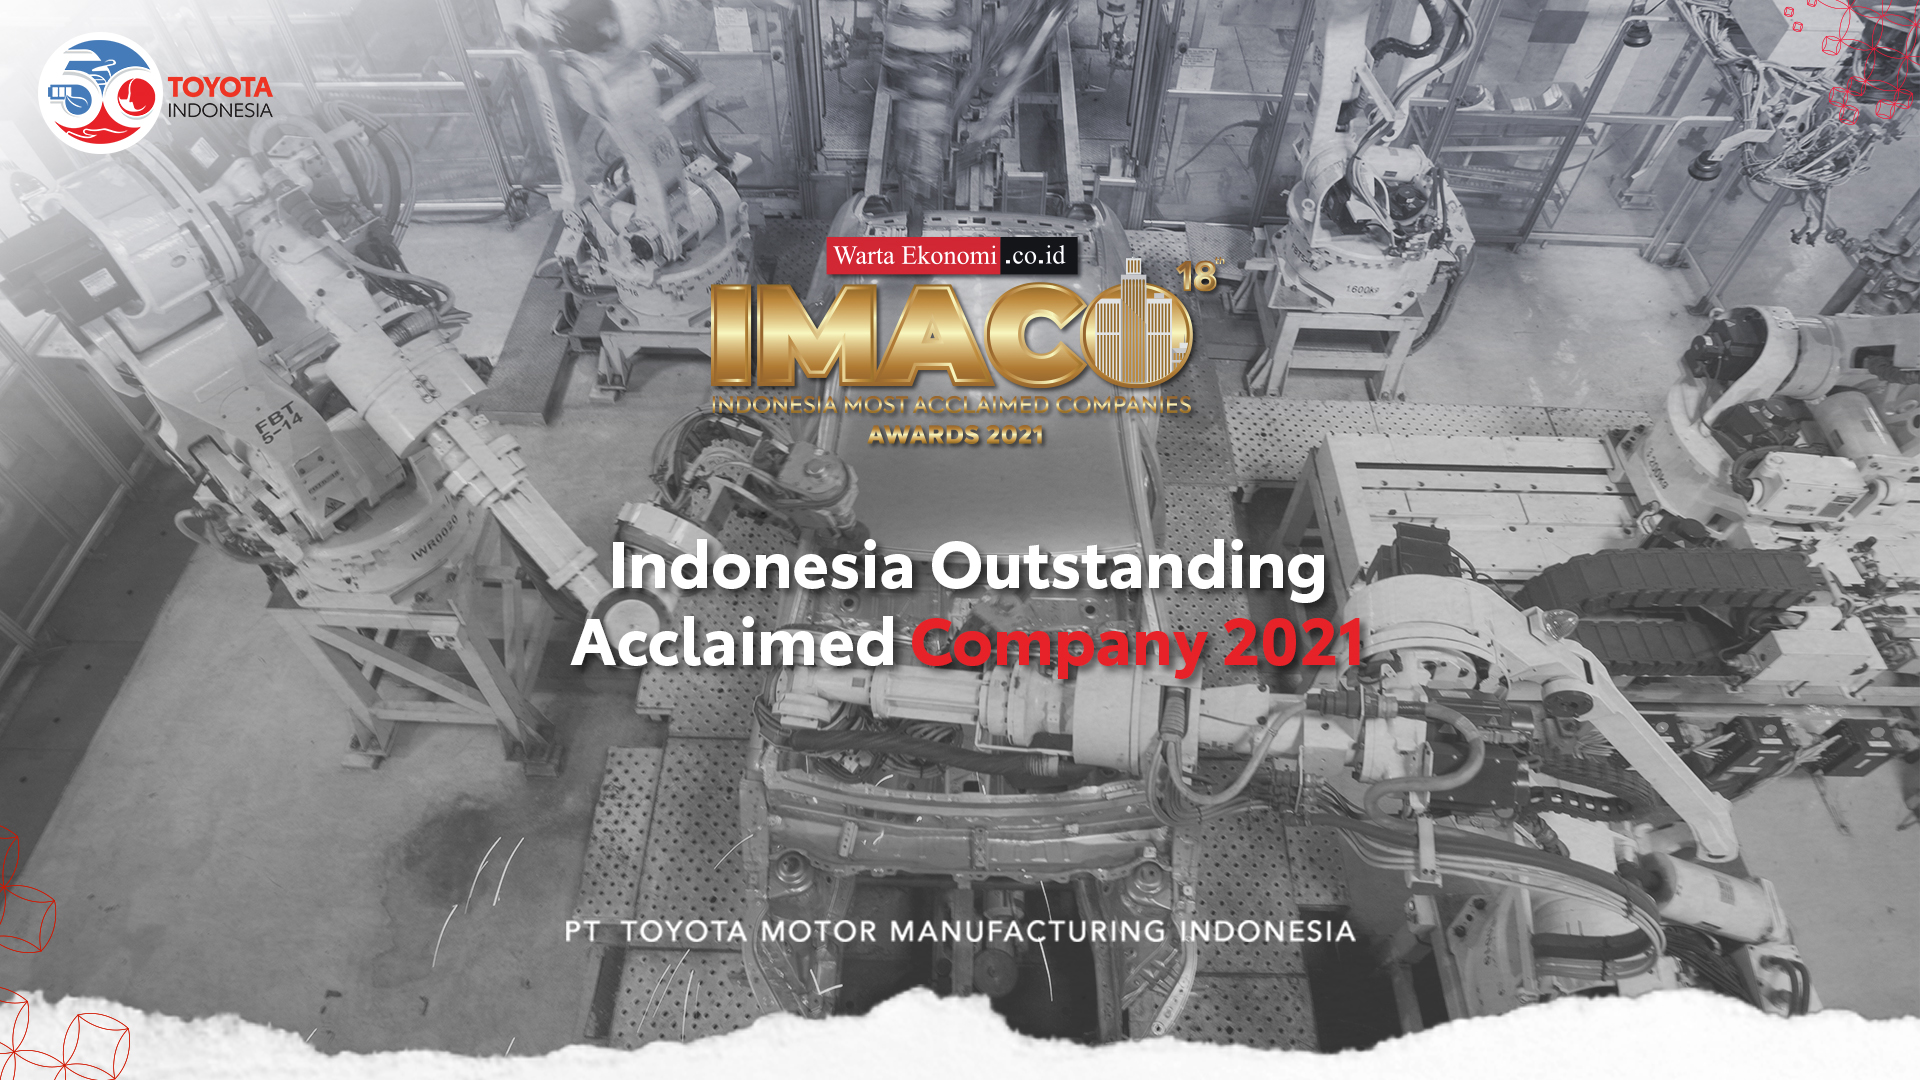 Most Acclaimed Companies Awards 2021